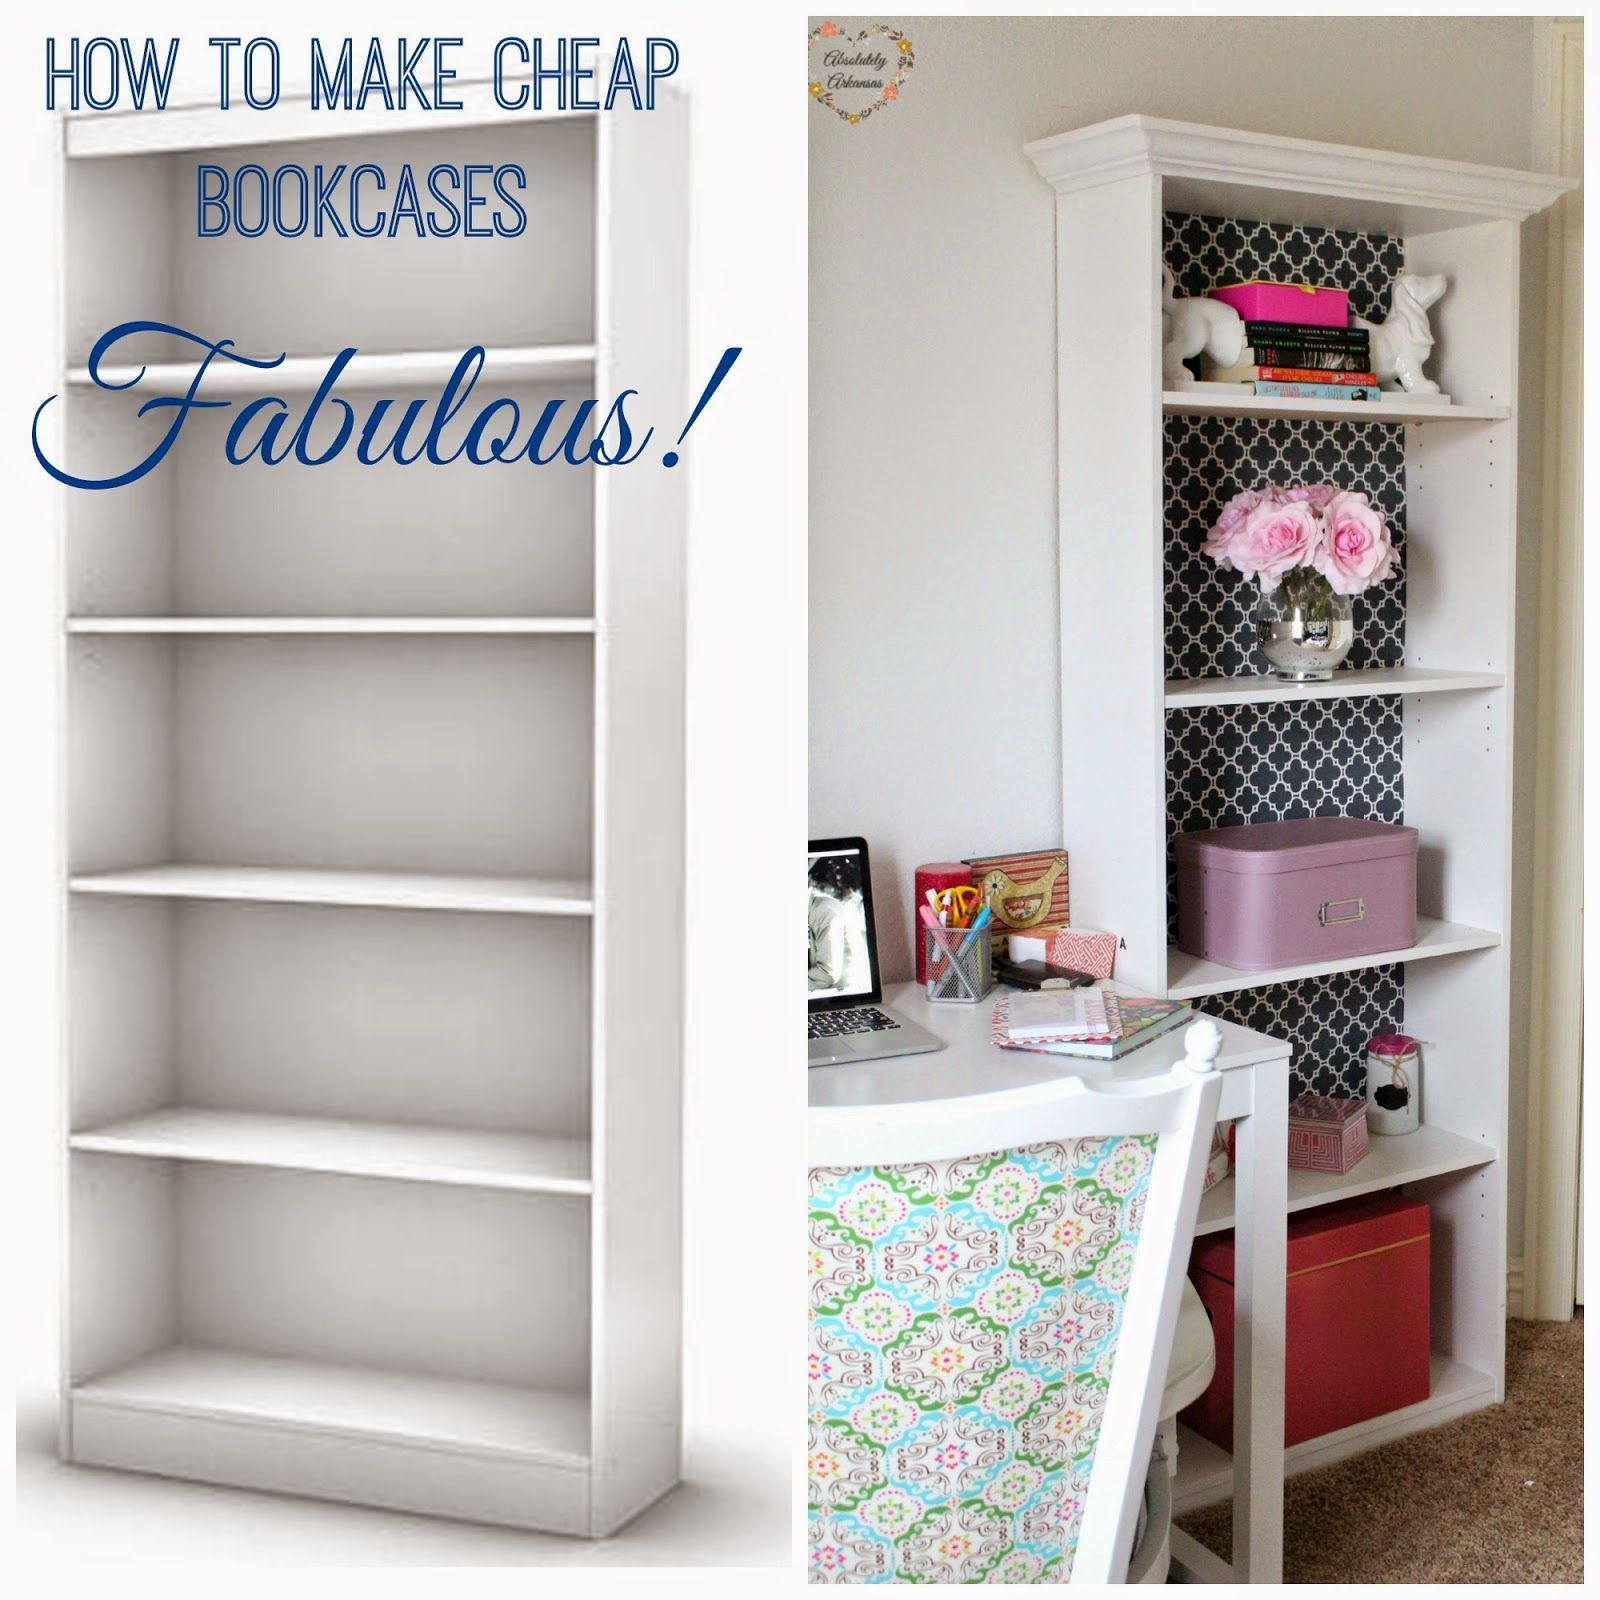 how to add crown molding to bookcases. How to add